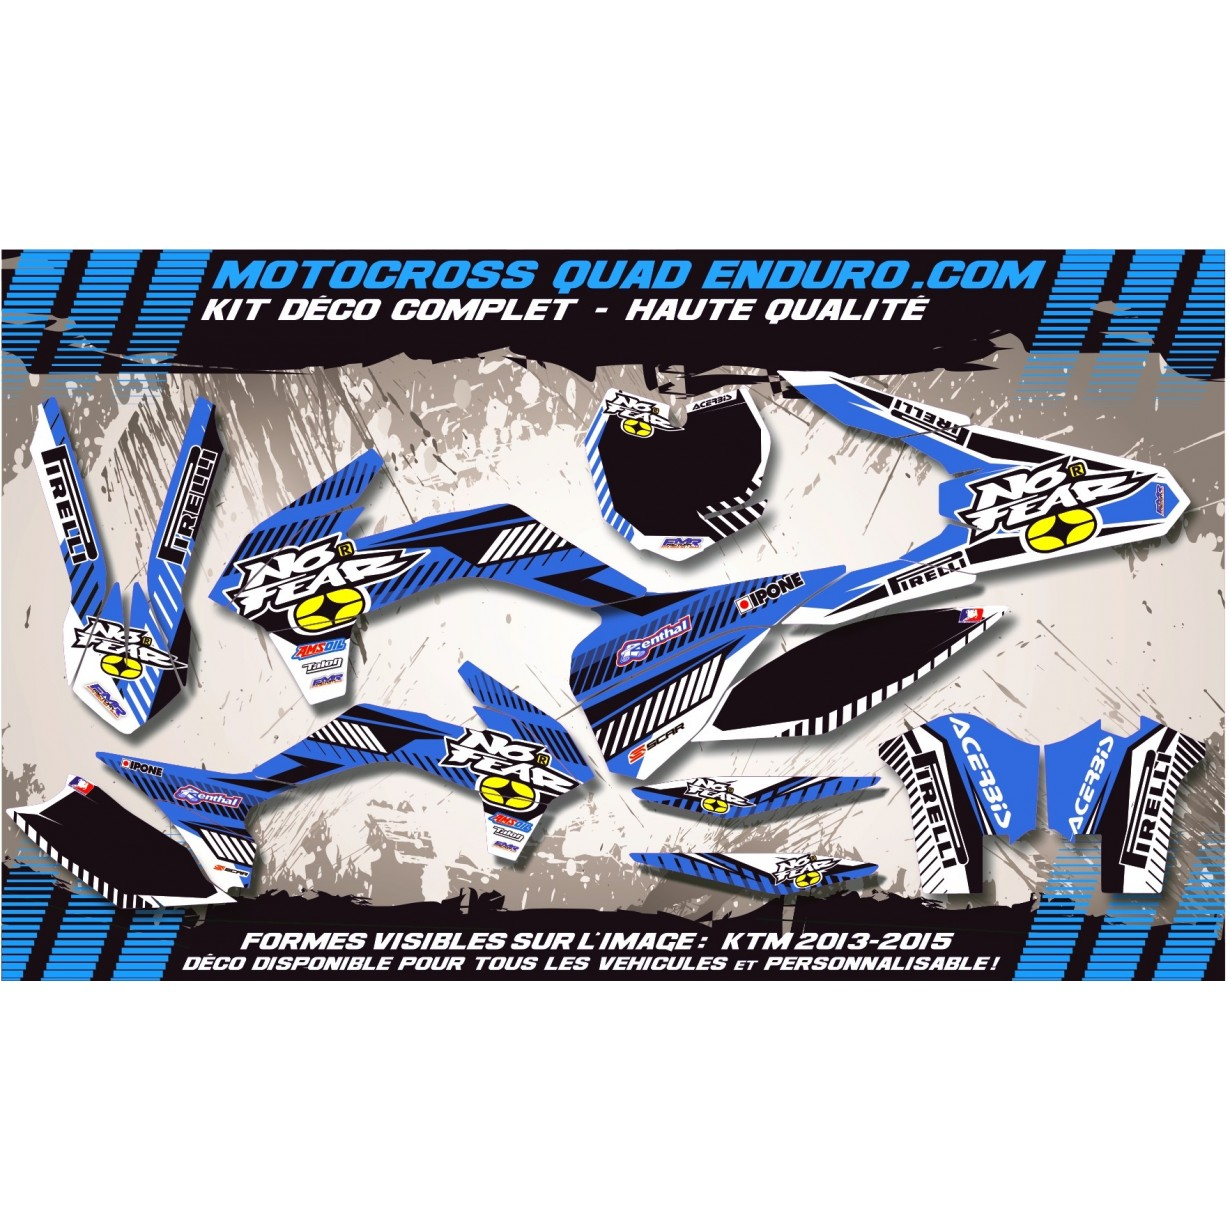 KIT DÉCO Perso 700 RAPTOR 13-16 Quad NO FEAR MA5E